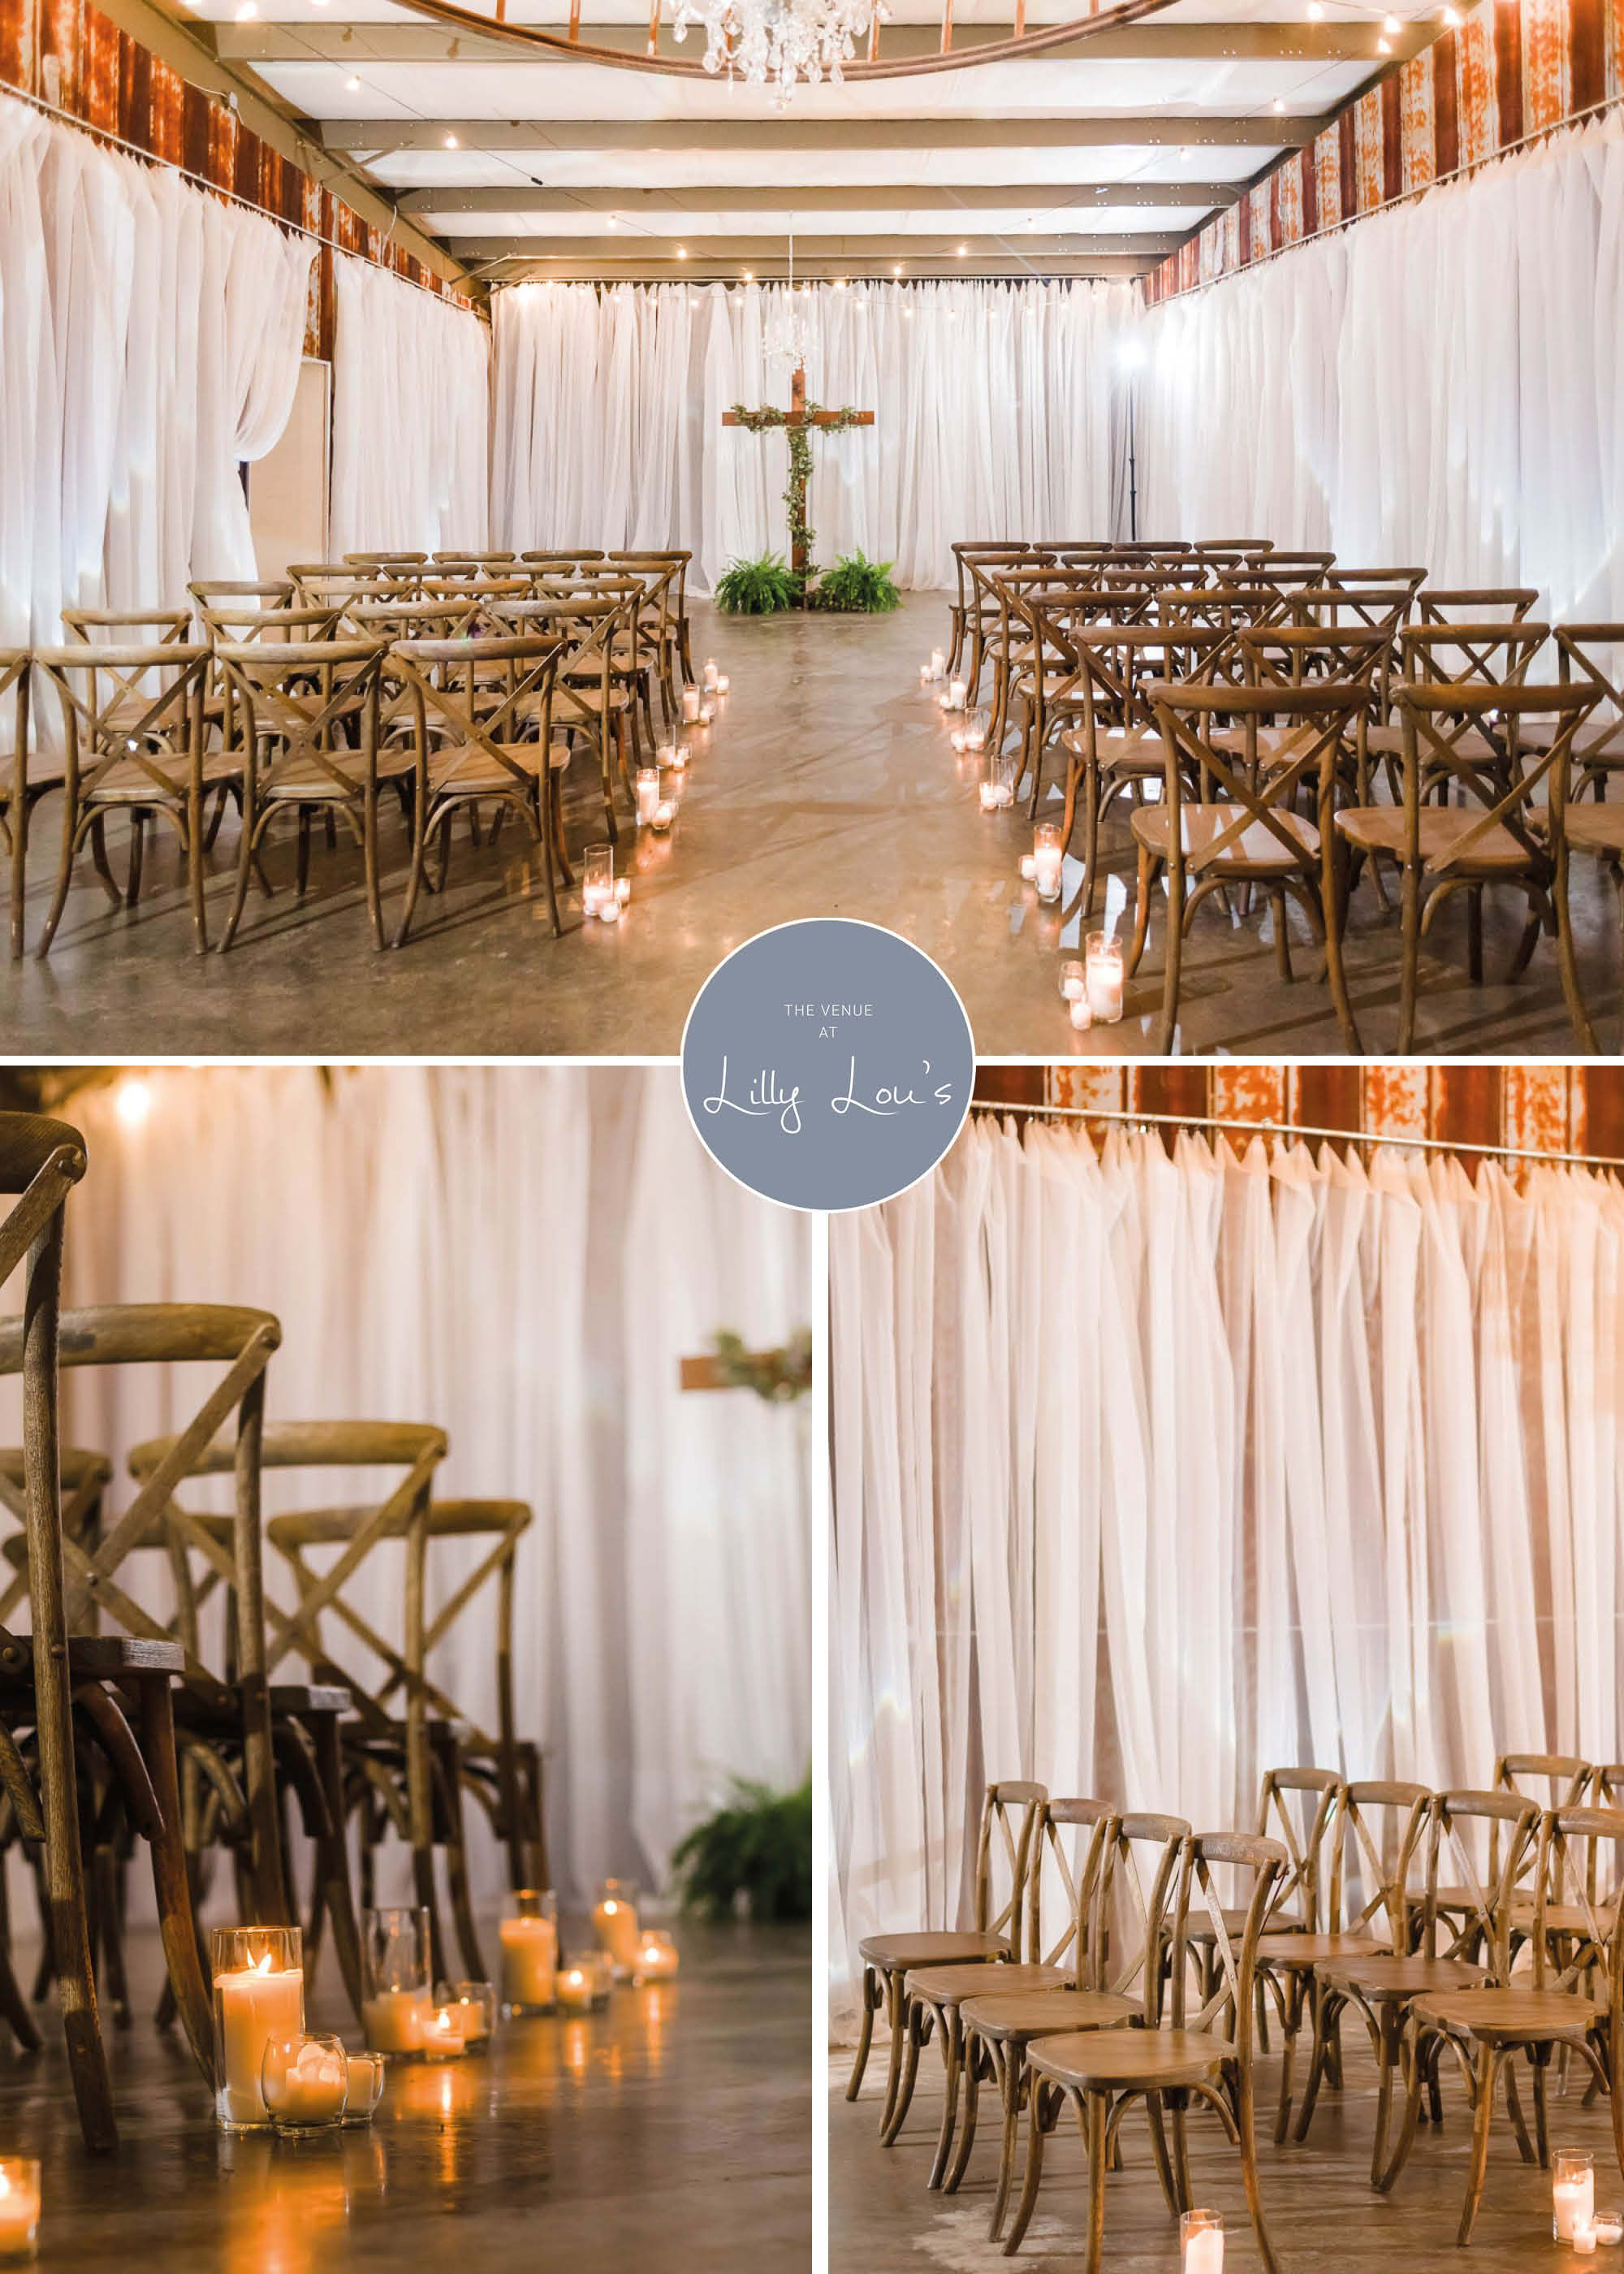 The Venue At Lilly Lou S Alabama Wedding Venues